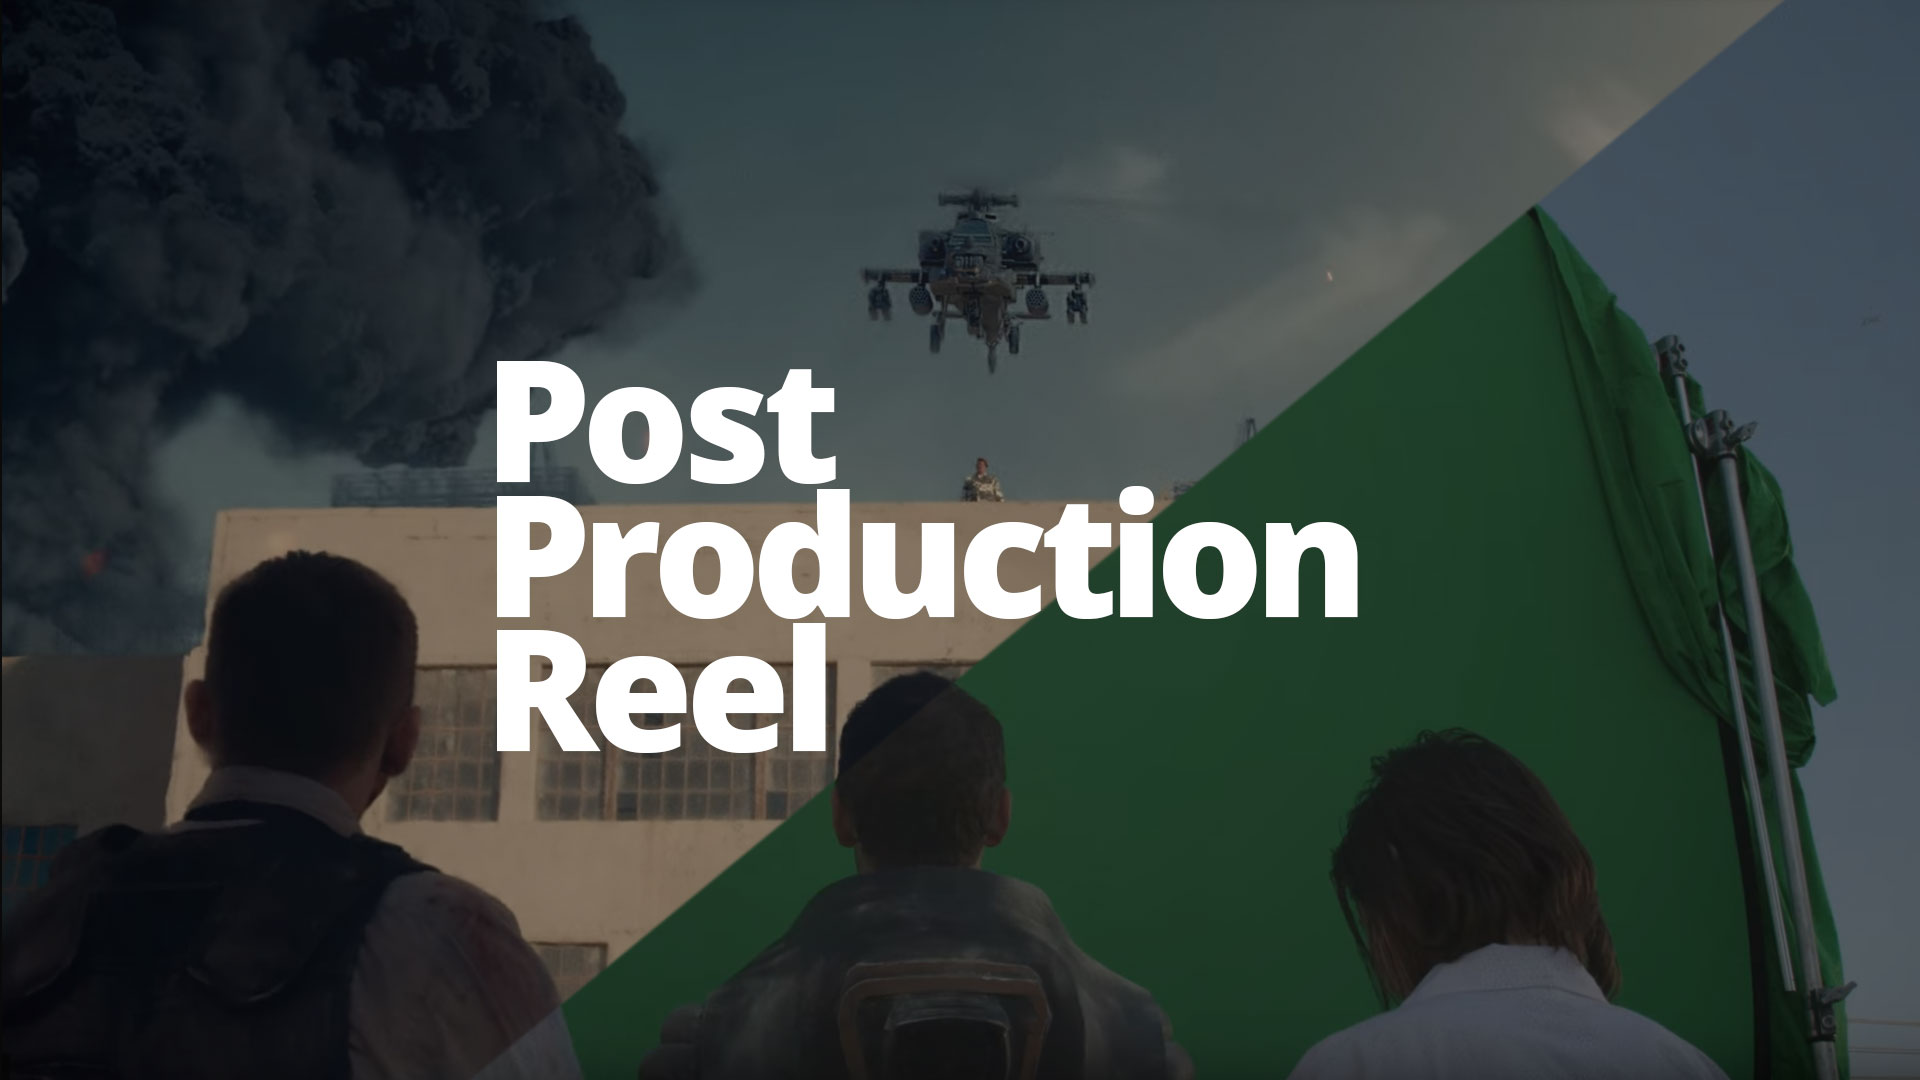 Post Production Reel 2